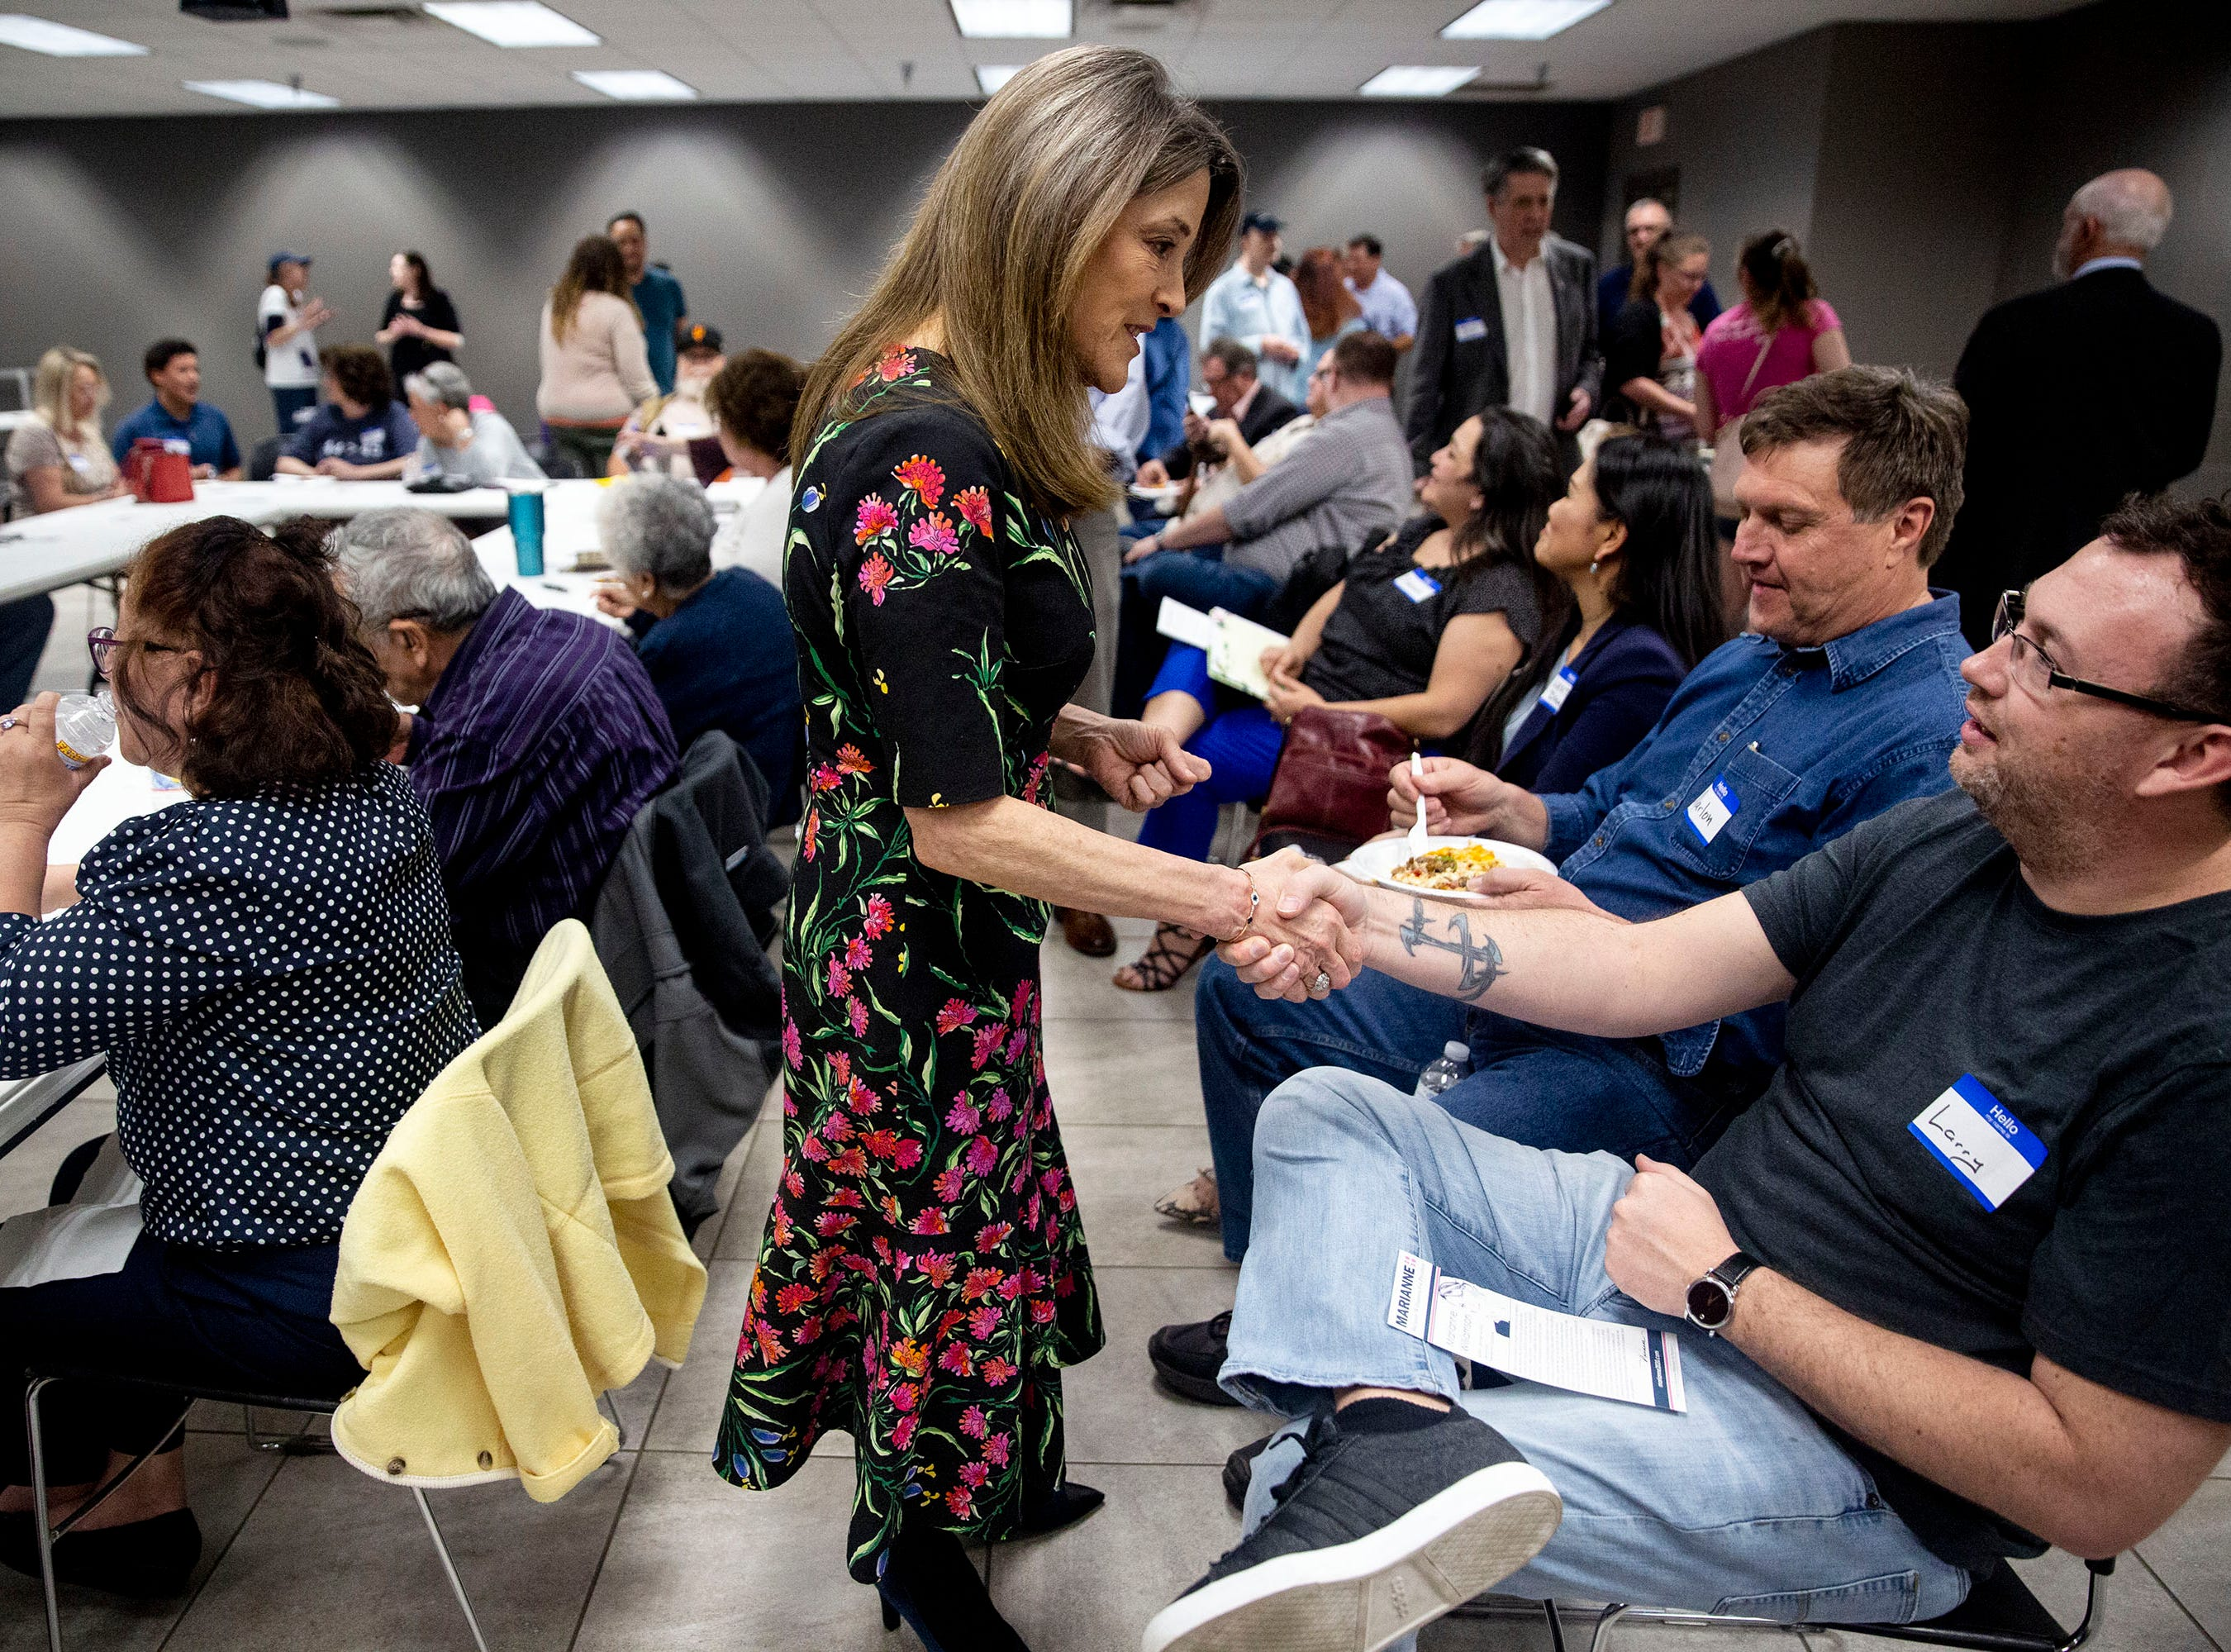 Presidential Hopeful Marianne Williamson shakes hands with people in the crowd before giving a speech to the group gathered by the Asian & Latino Coalition on Monday, April 8, 2019, in Des Moines.